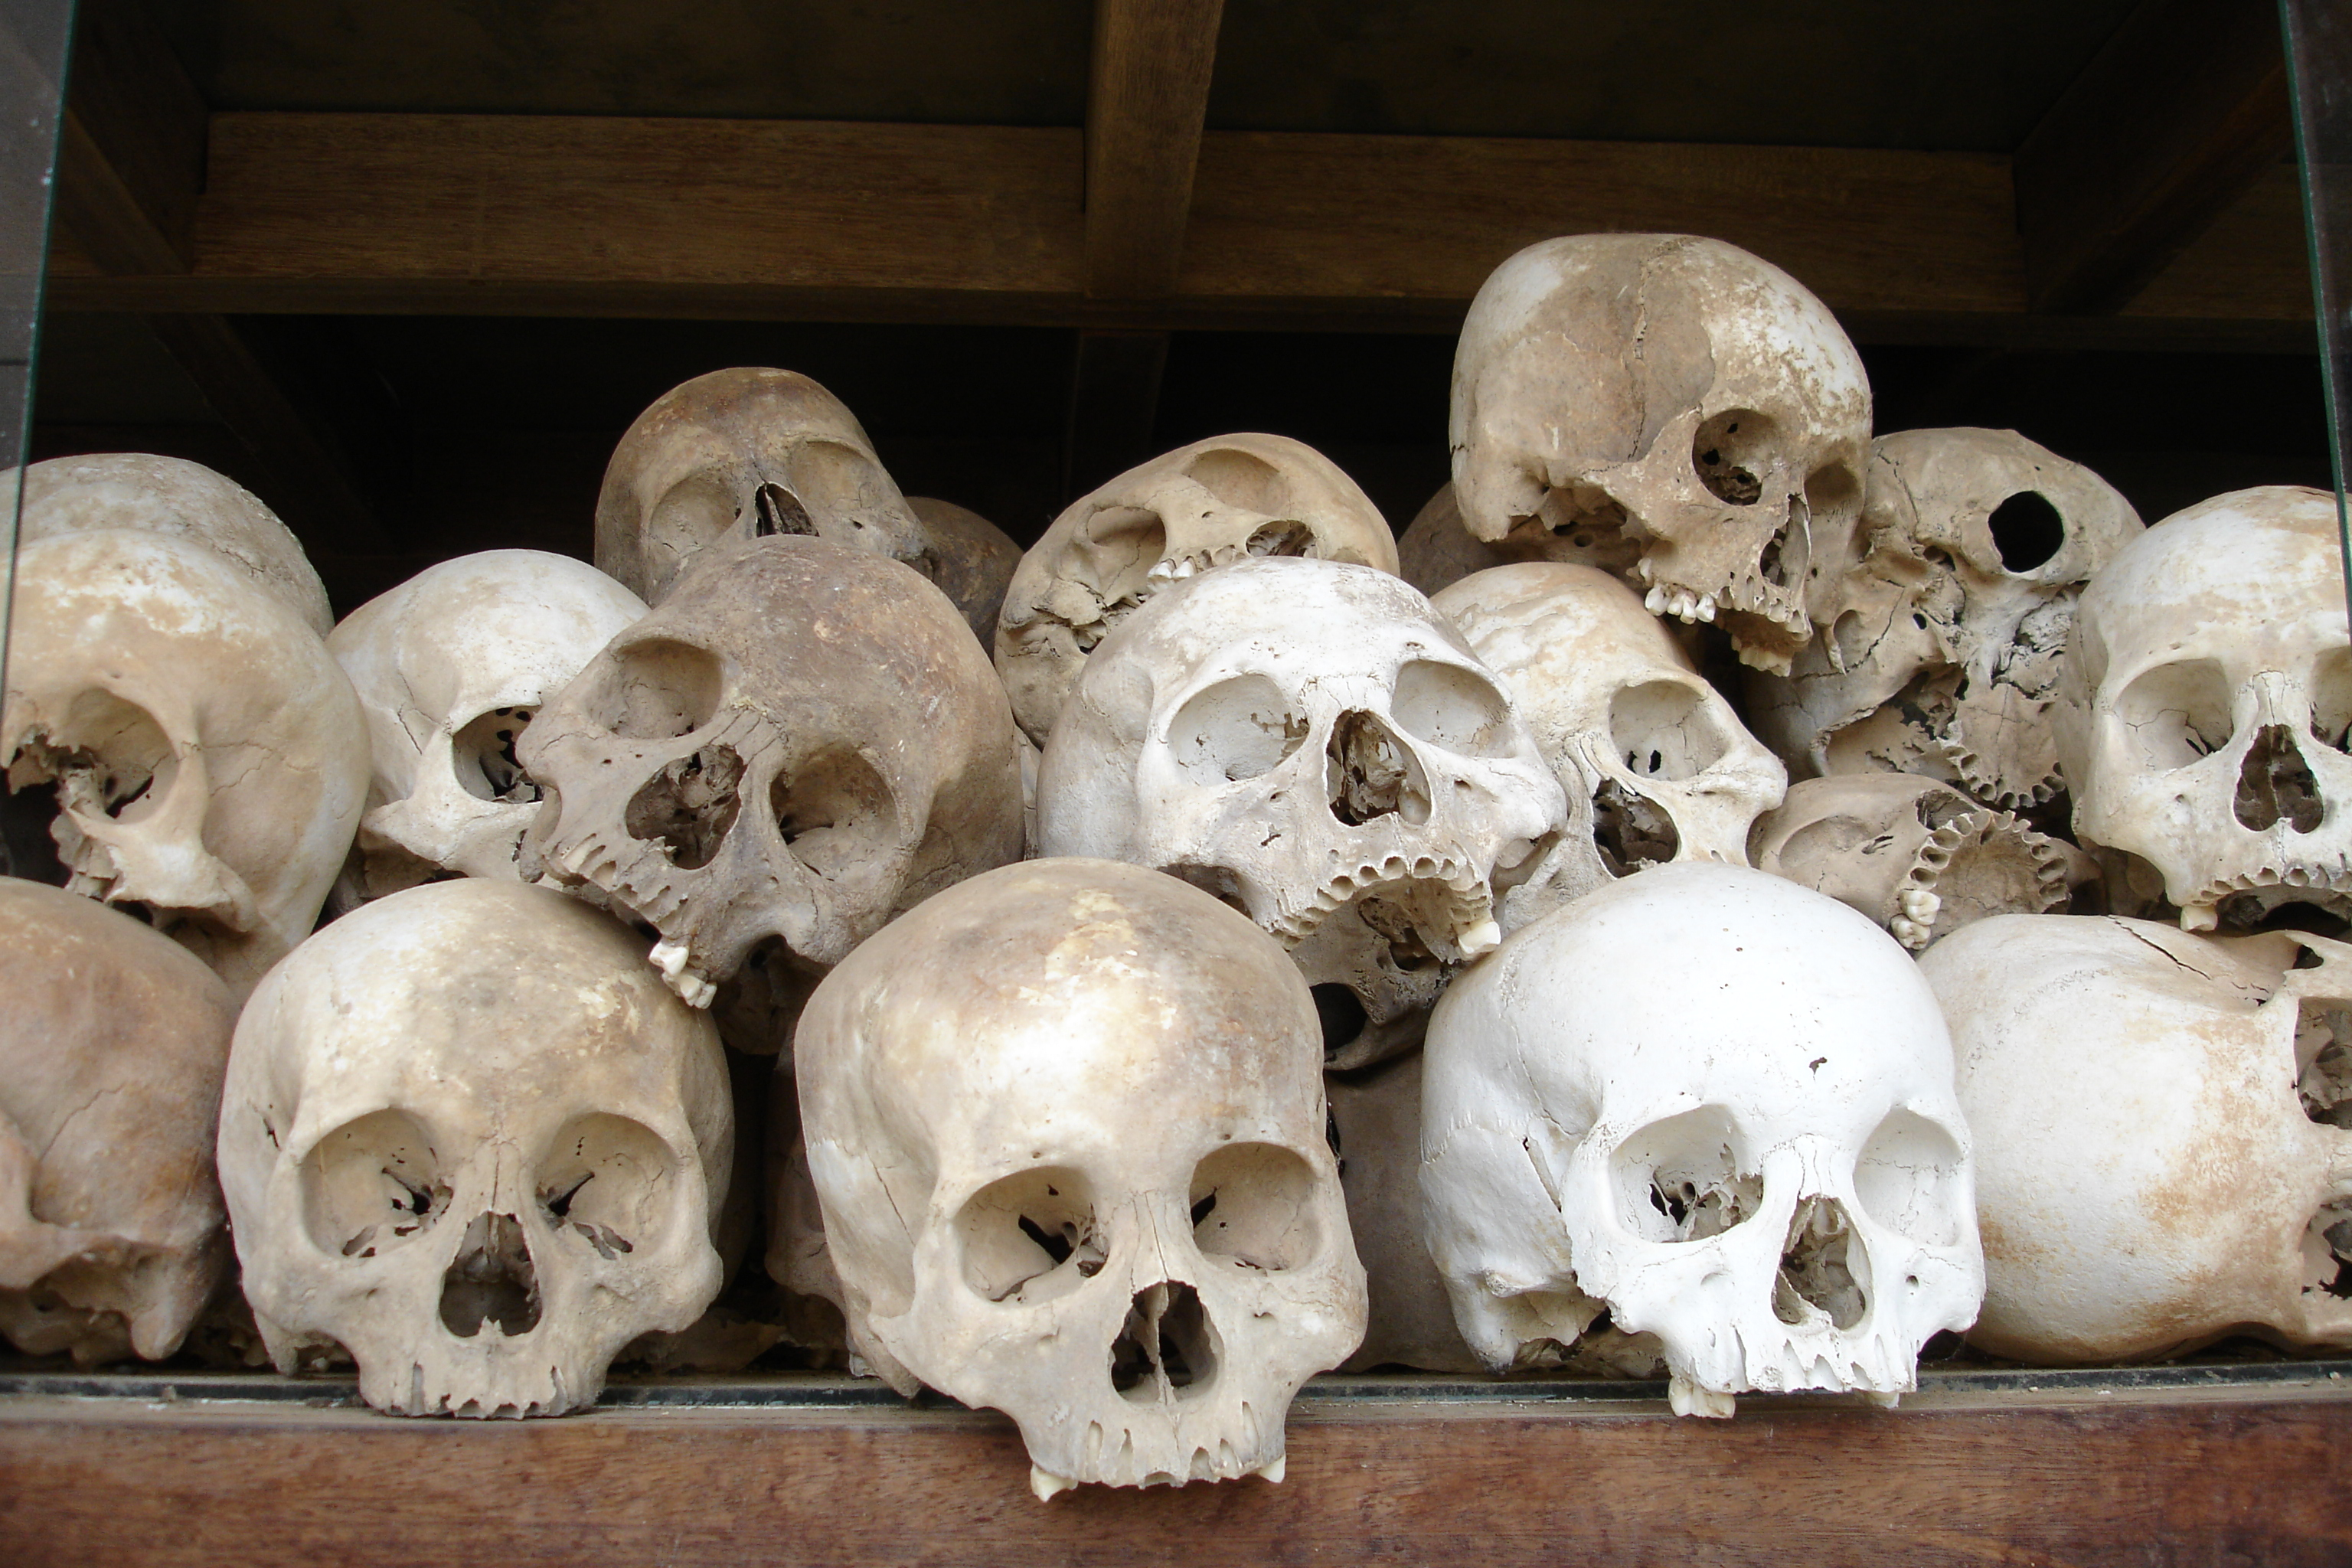 Killing Fields of Phnom Pehn filled with Mass Graves